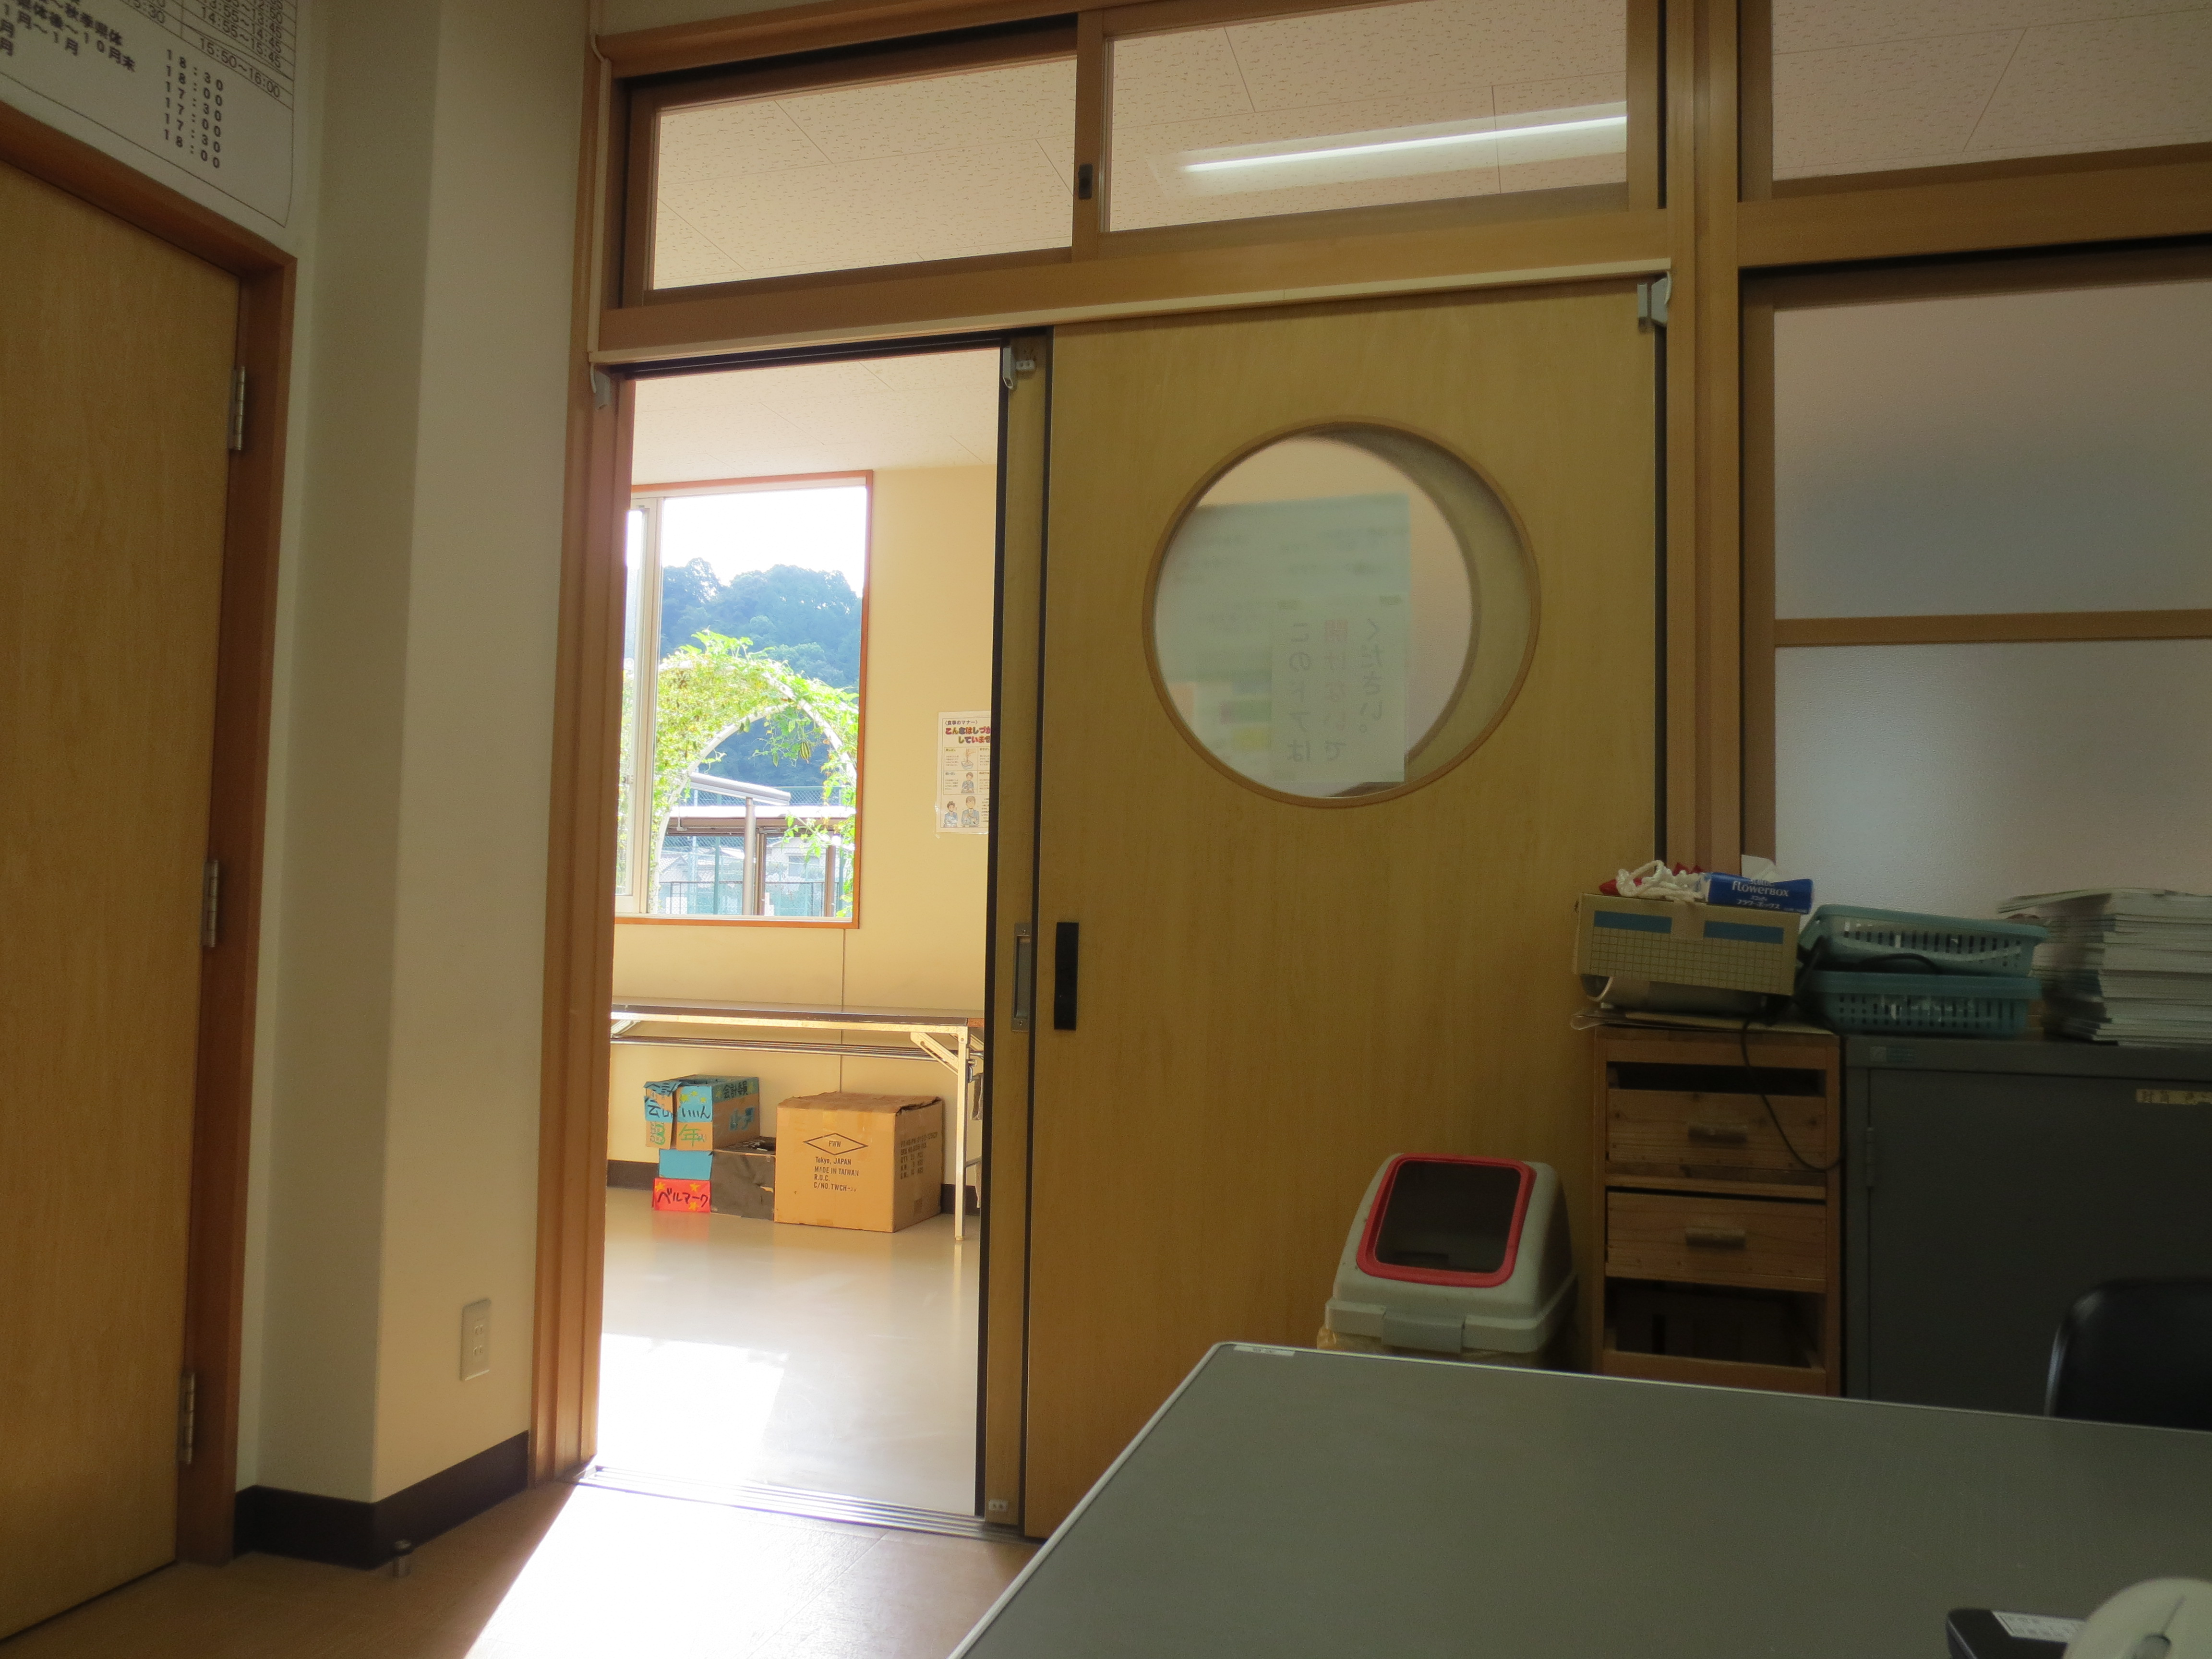 Japanese Classroom Design ~ Inside a middle school in japan 素敵なライフ